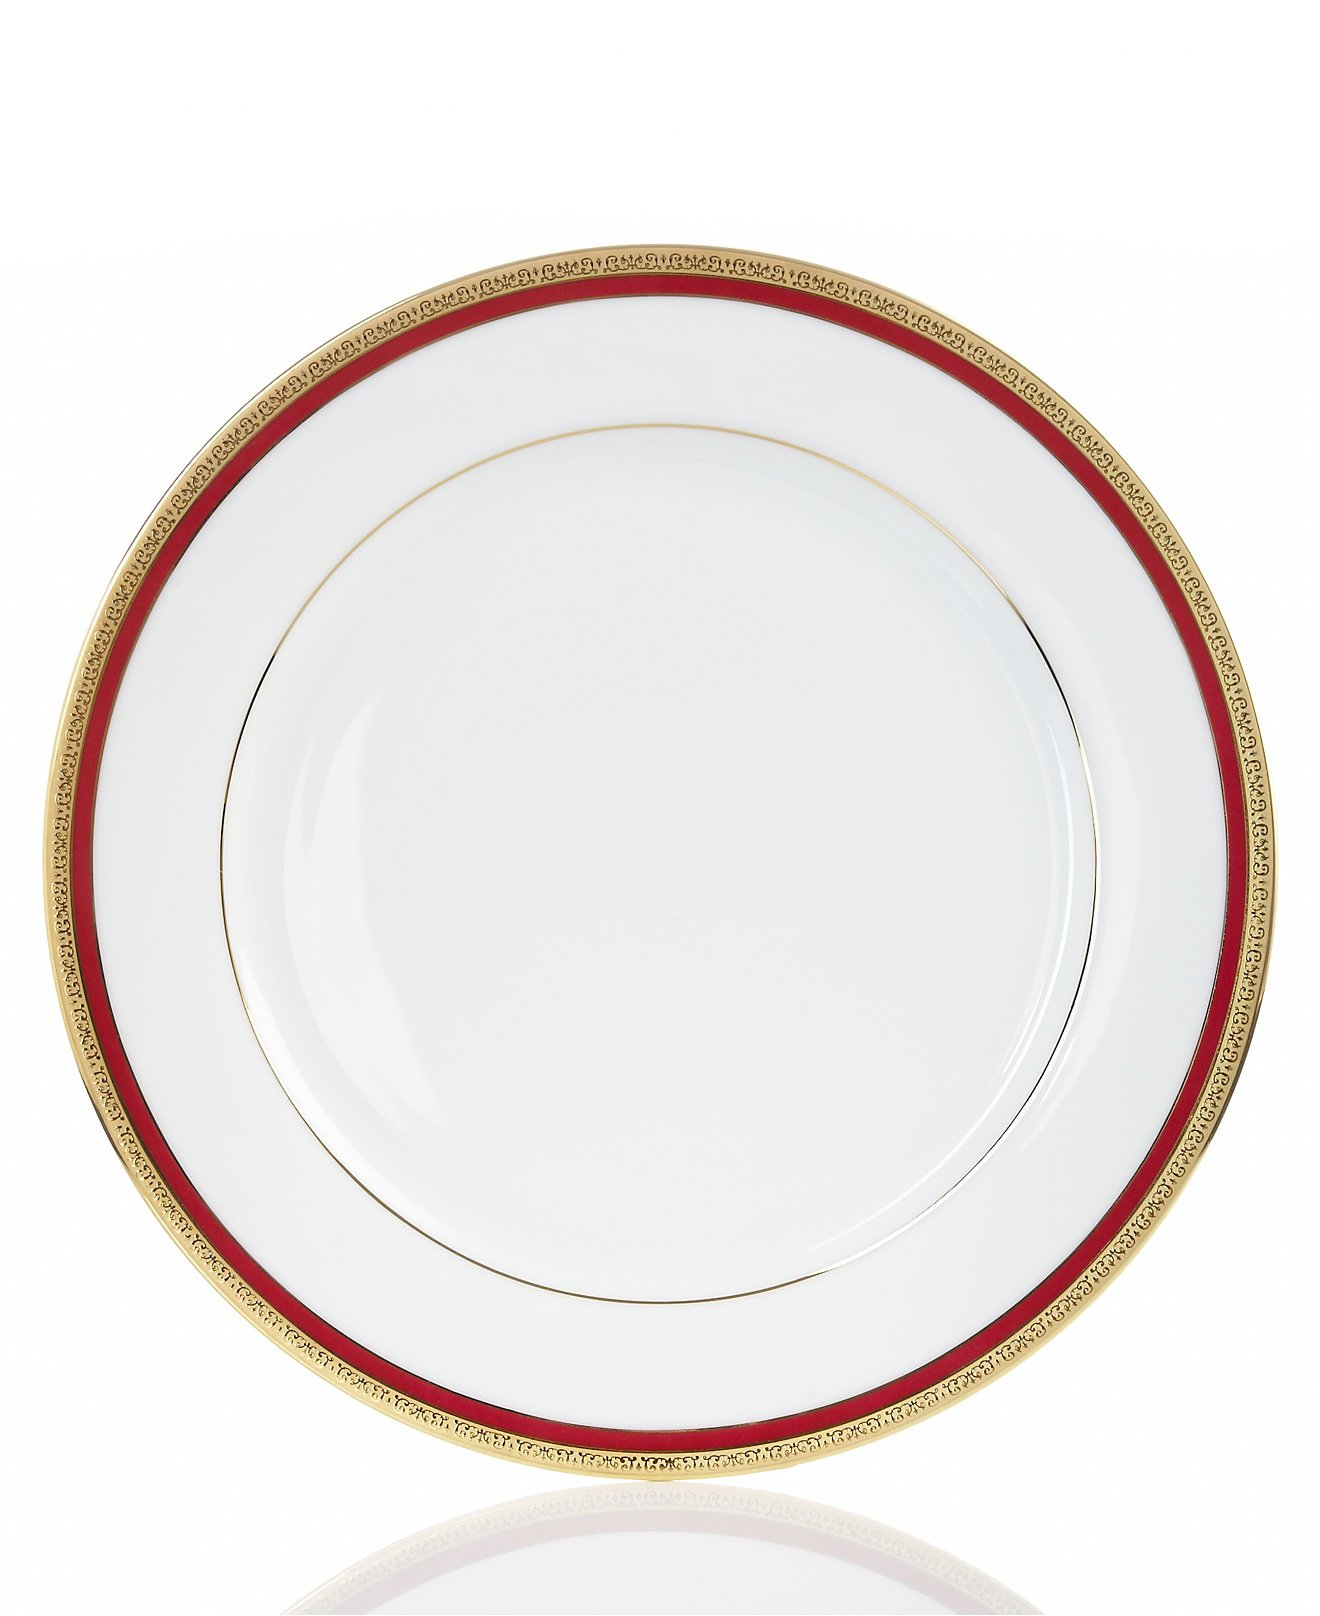 Charter Club Grand Buffet Classic Red Dinner Plates, Set of 4 (11.5-in)